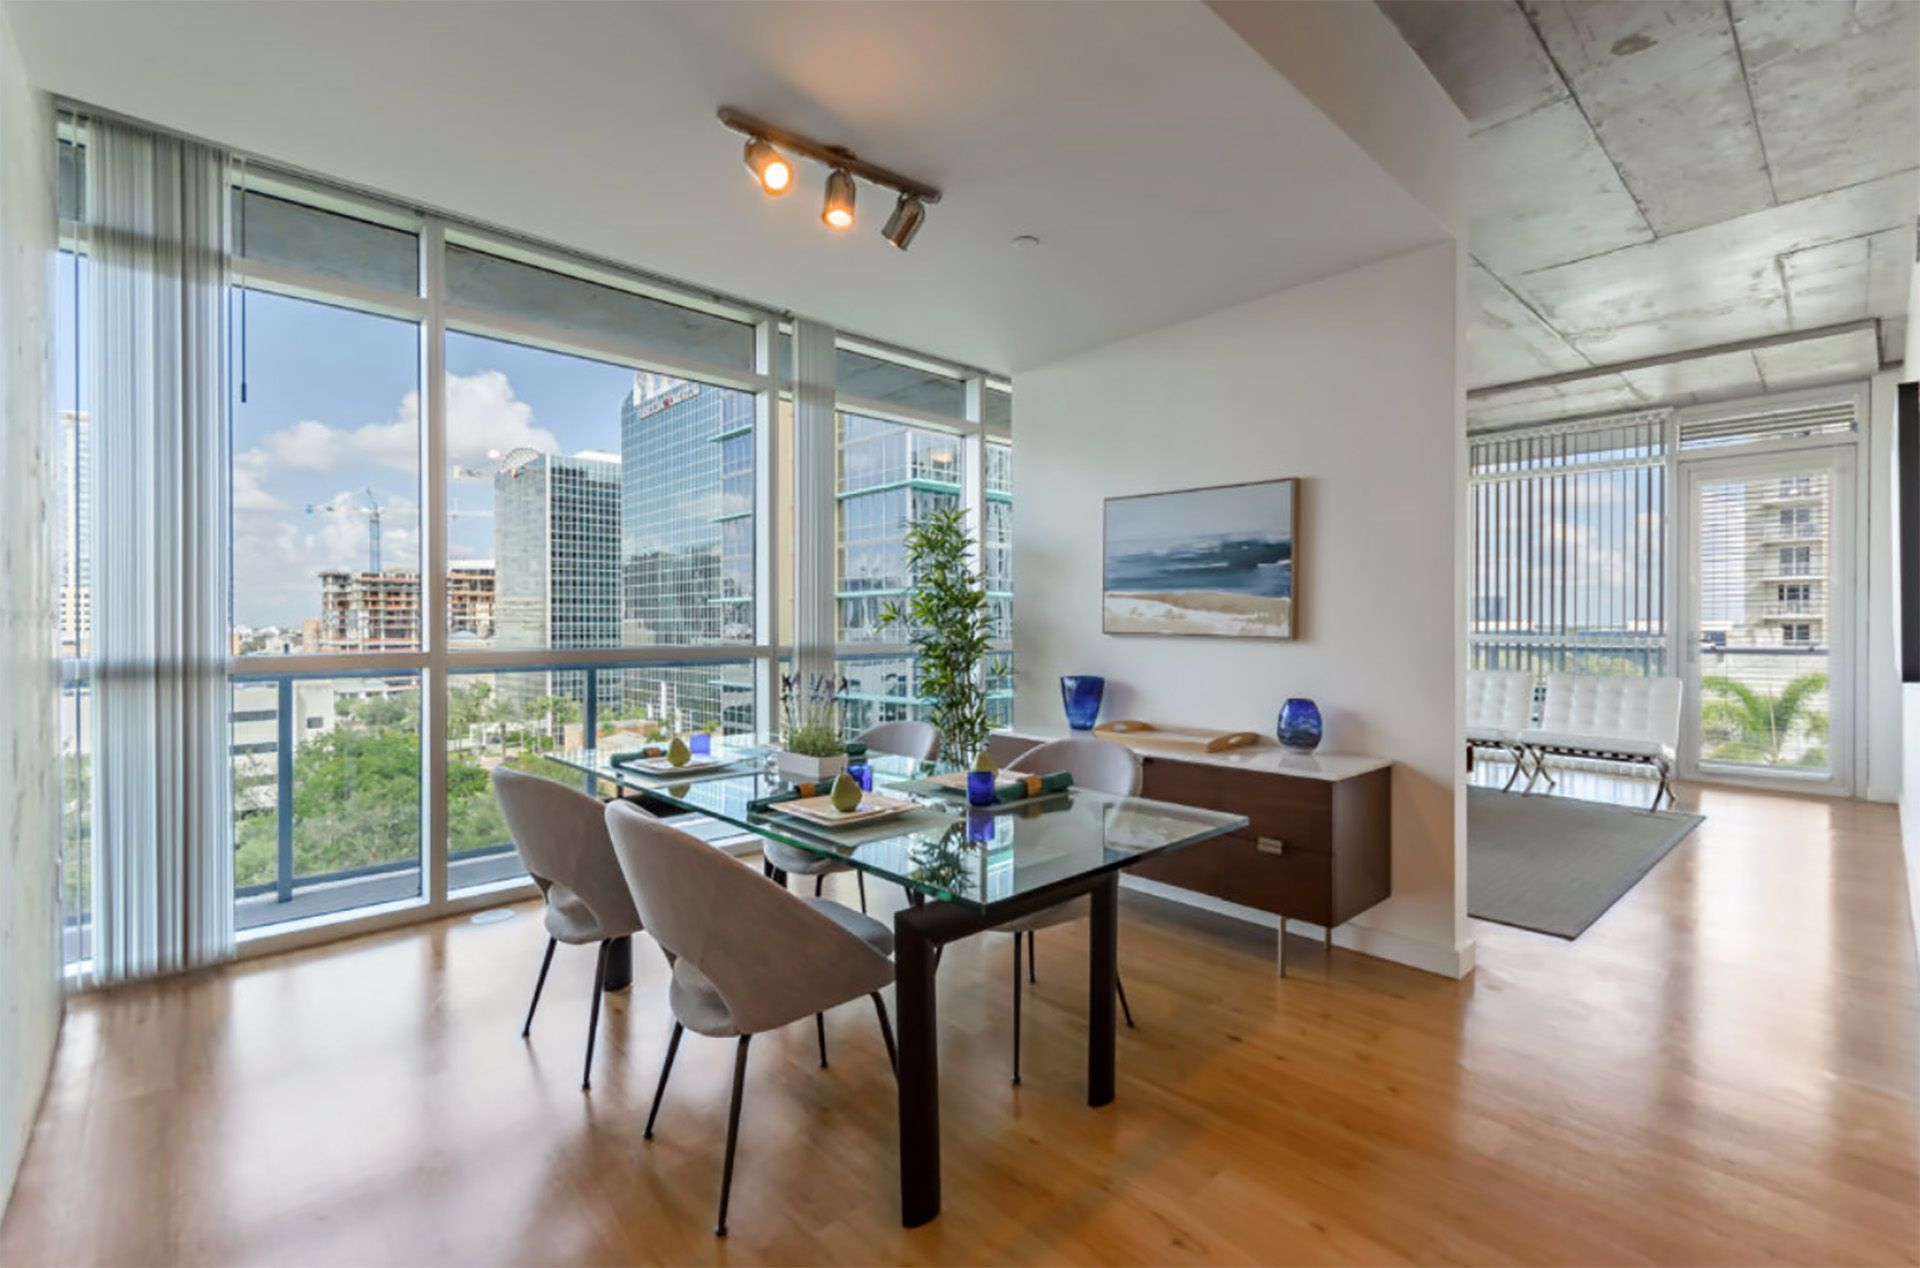 Apartment dining area with seating and table